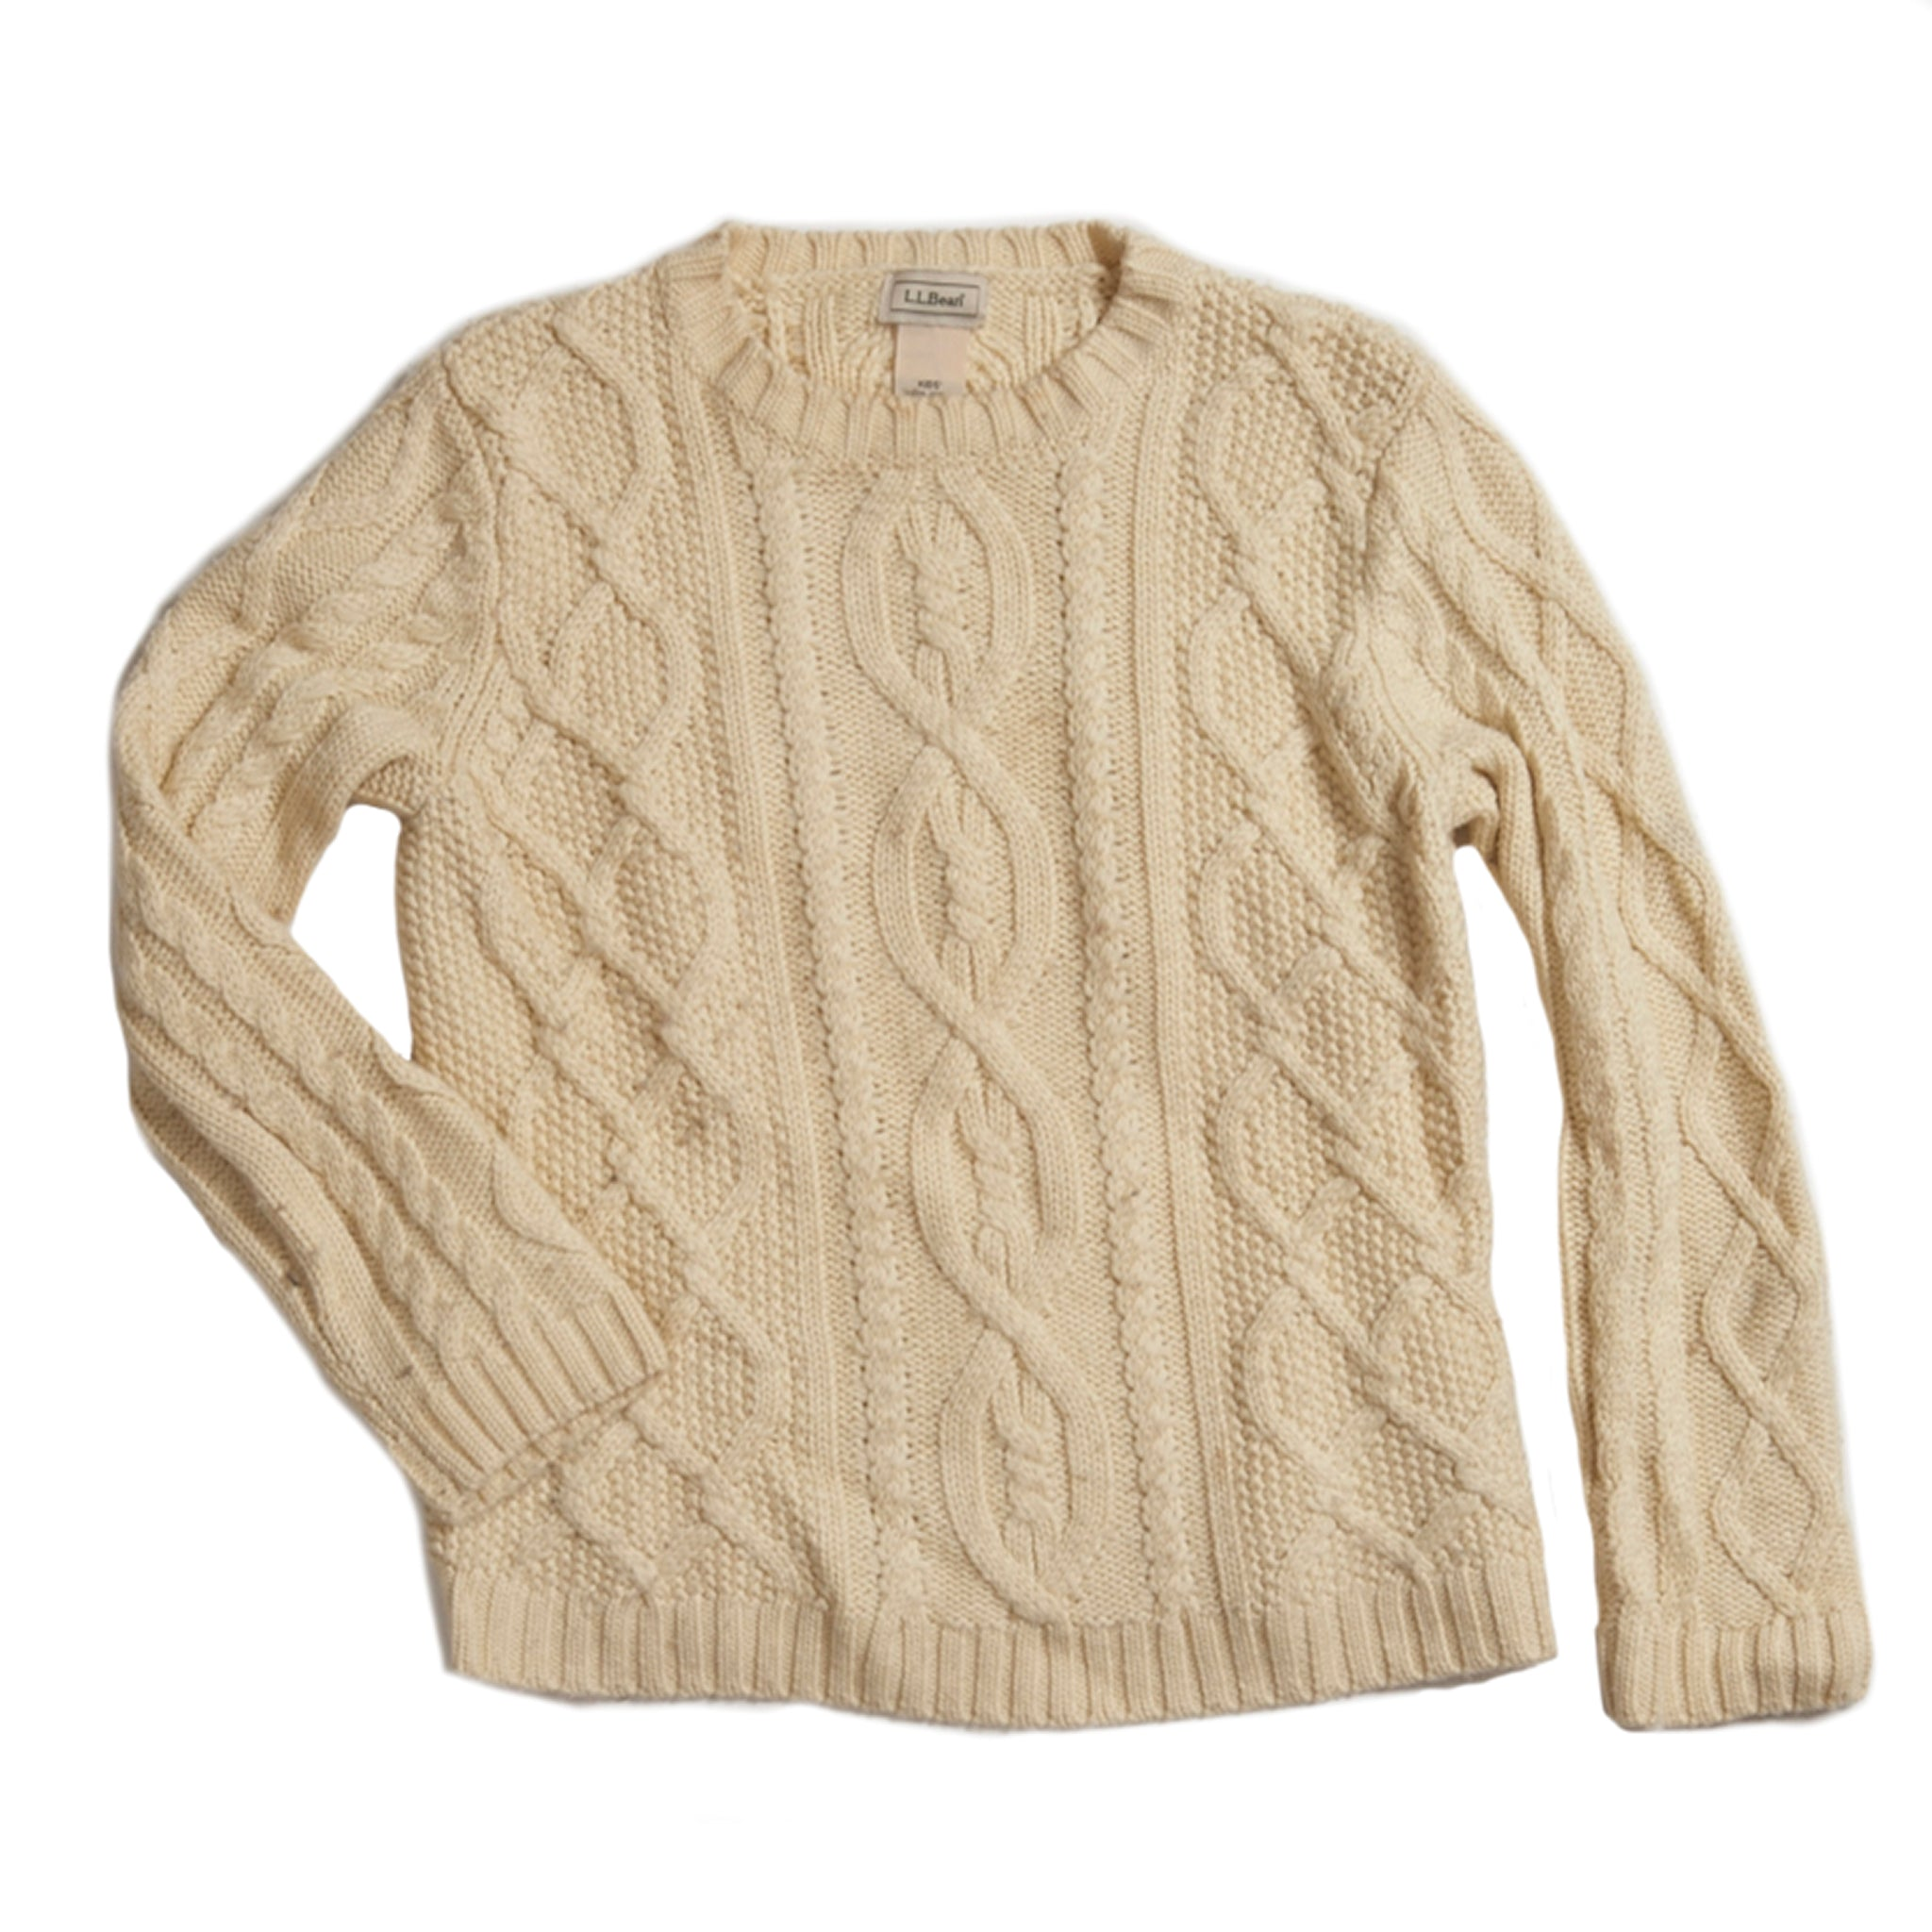 Kid's Classic L.L. Bean Fisherman Sweater